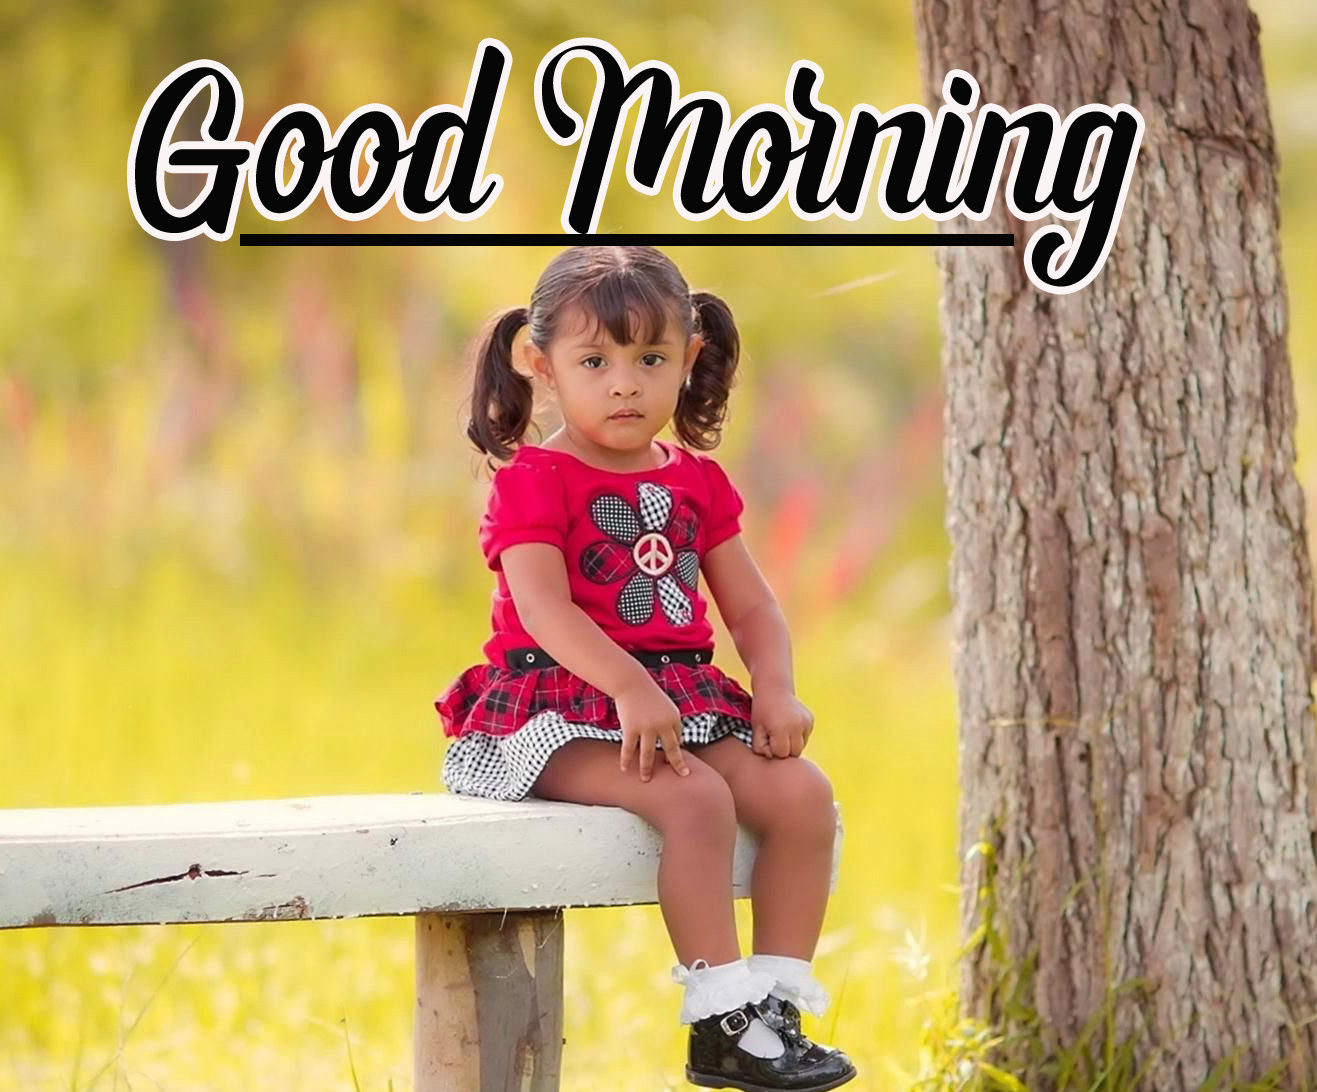 Beautiful Good Morning Images Wallpaper Pics With GIRLS